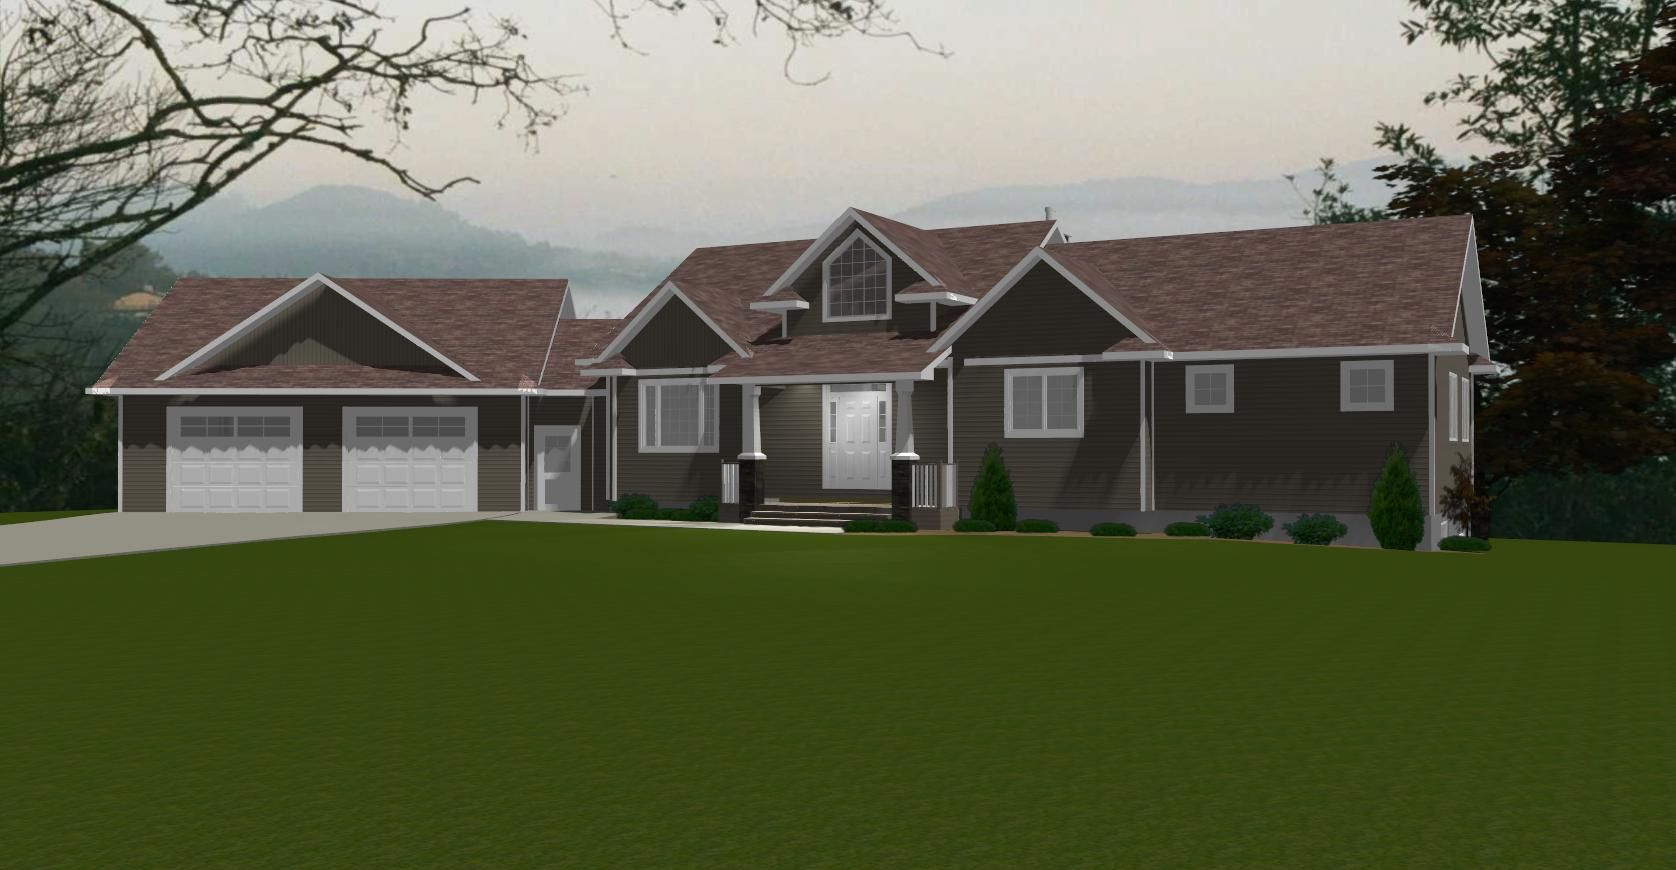 Pin by ashtyn mellendorf on home on the range for 2 car garage addition plans